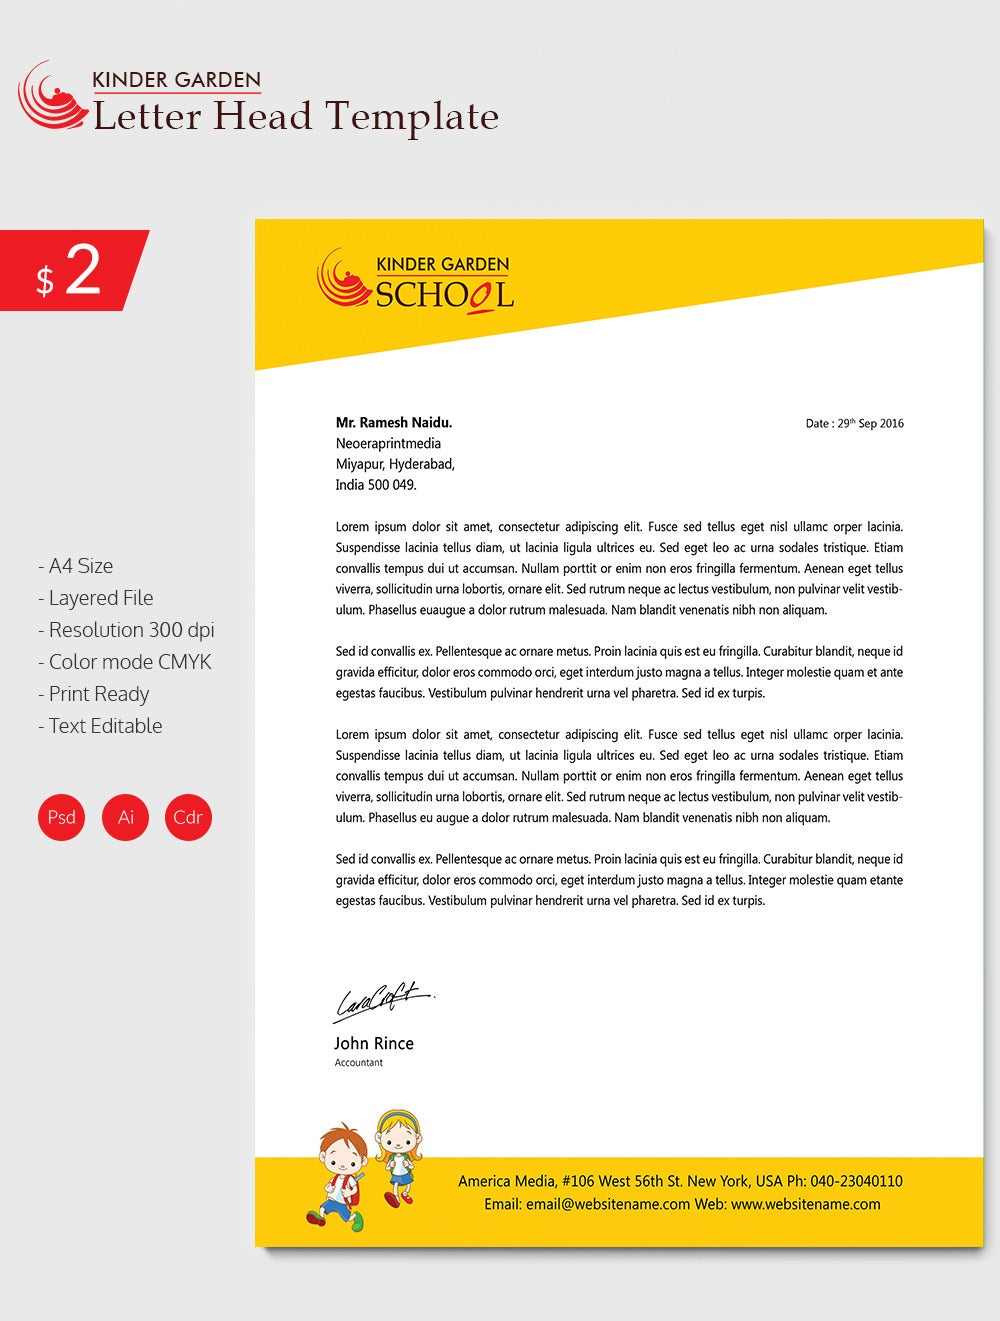 23 letterhead design templates free sample example format amazing kindergarten school letterhead download thecheapjerseys Image collections